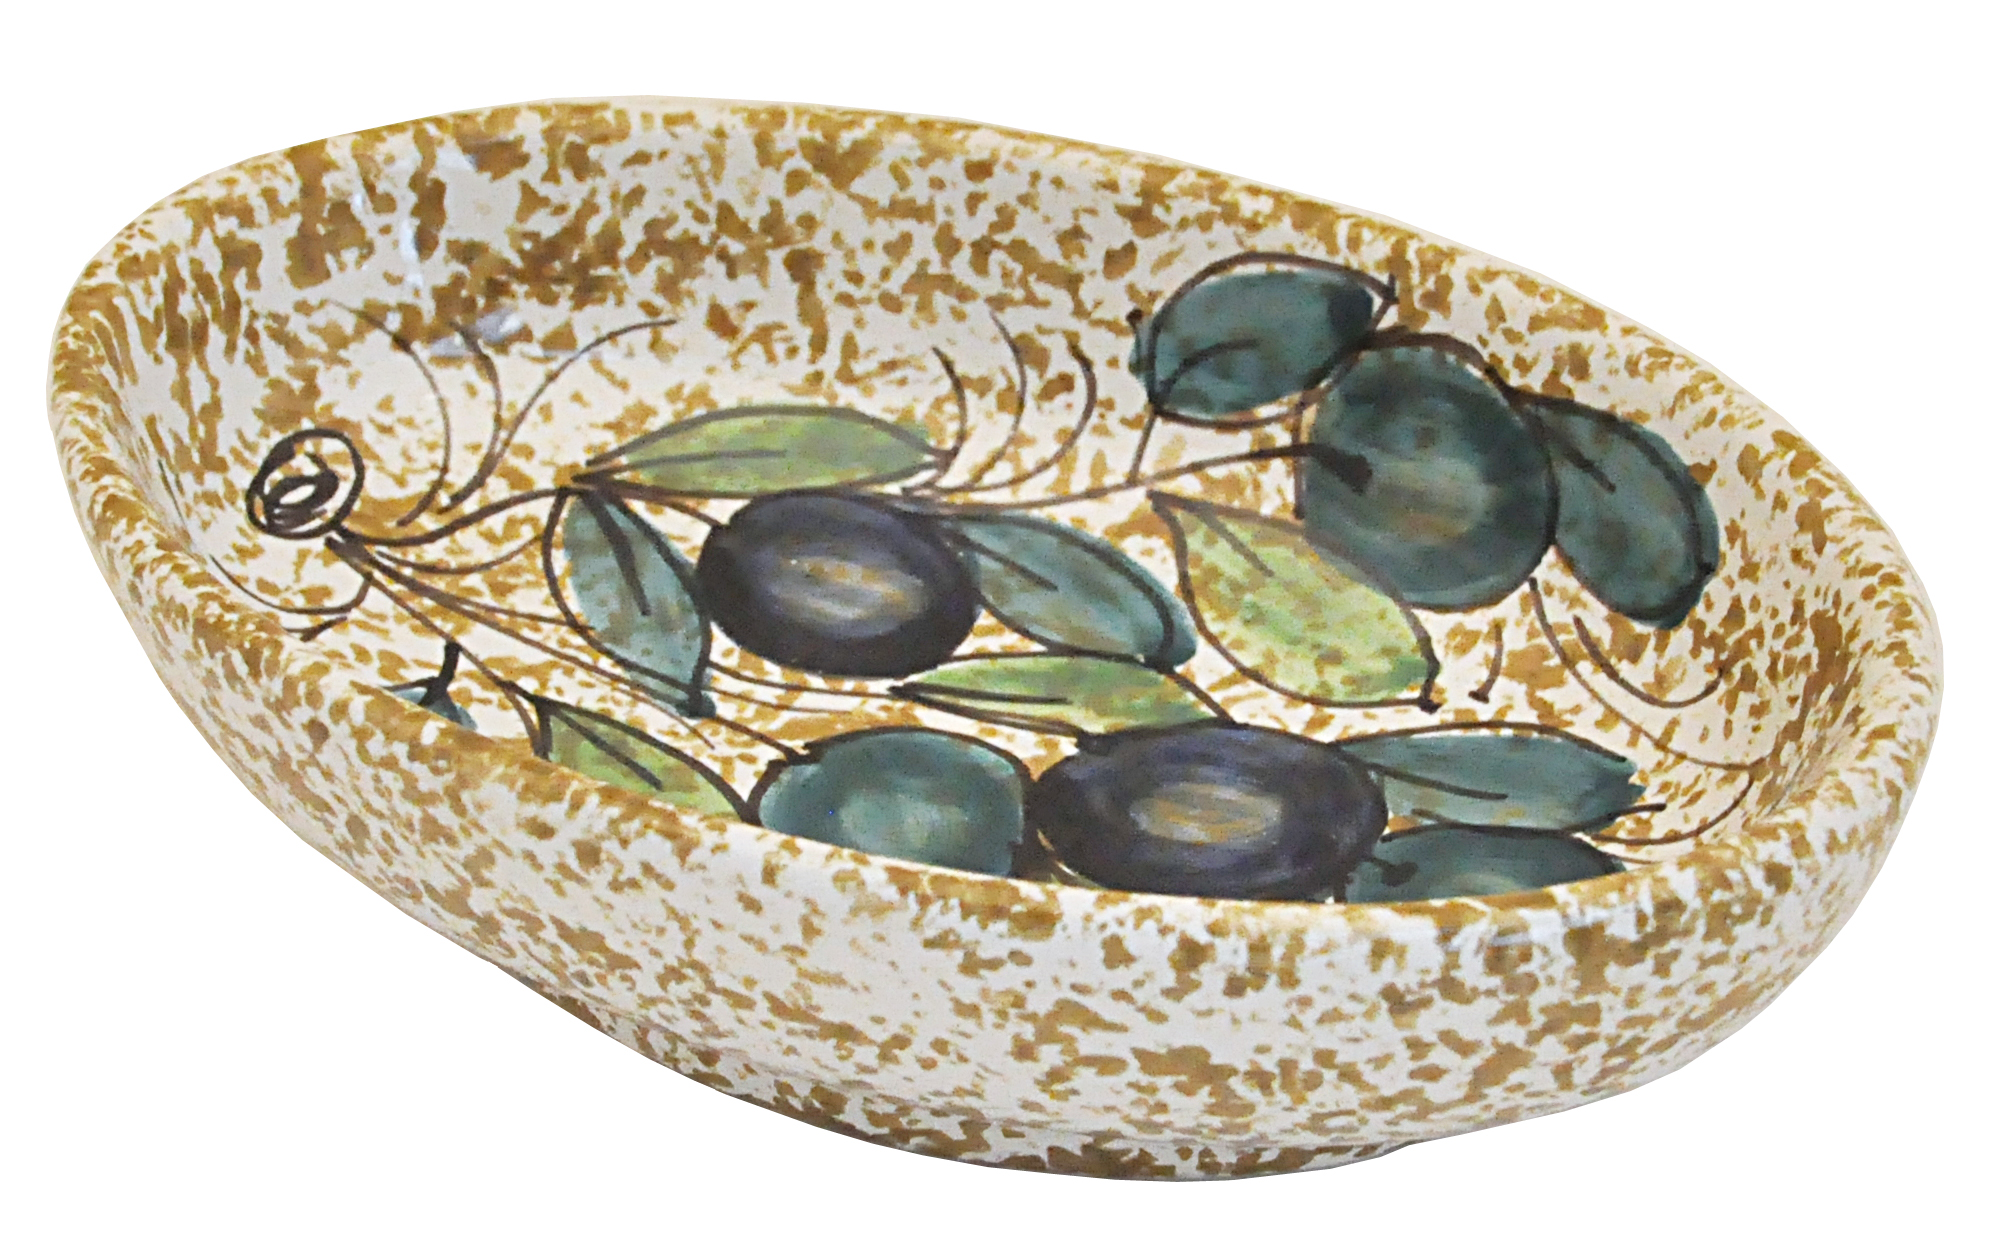 Black Olive Oval Bowl 4 in X 5.5 in X 1.5 in   Gracious Style  sc 1 st  Gracious Style & Abbiamo Tutto Black Olive Dinnerware   Gracious Style